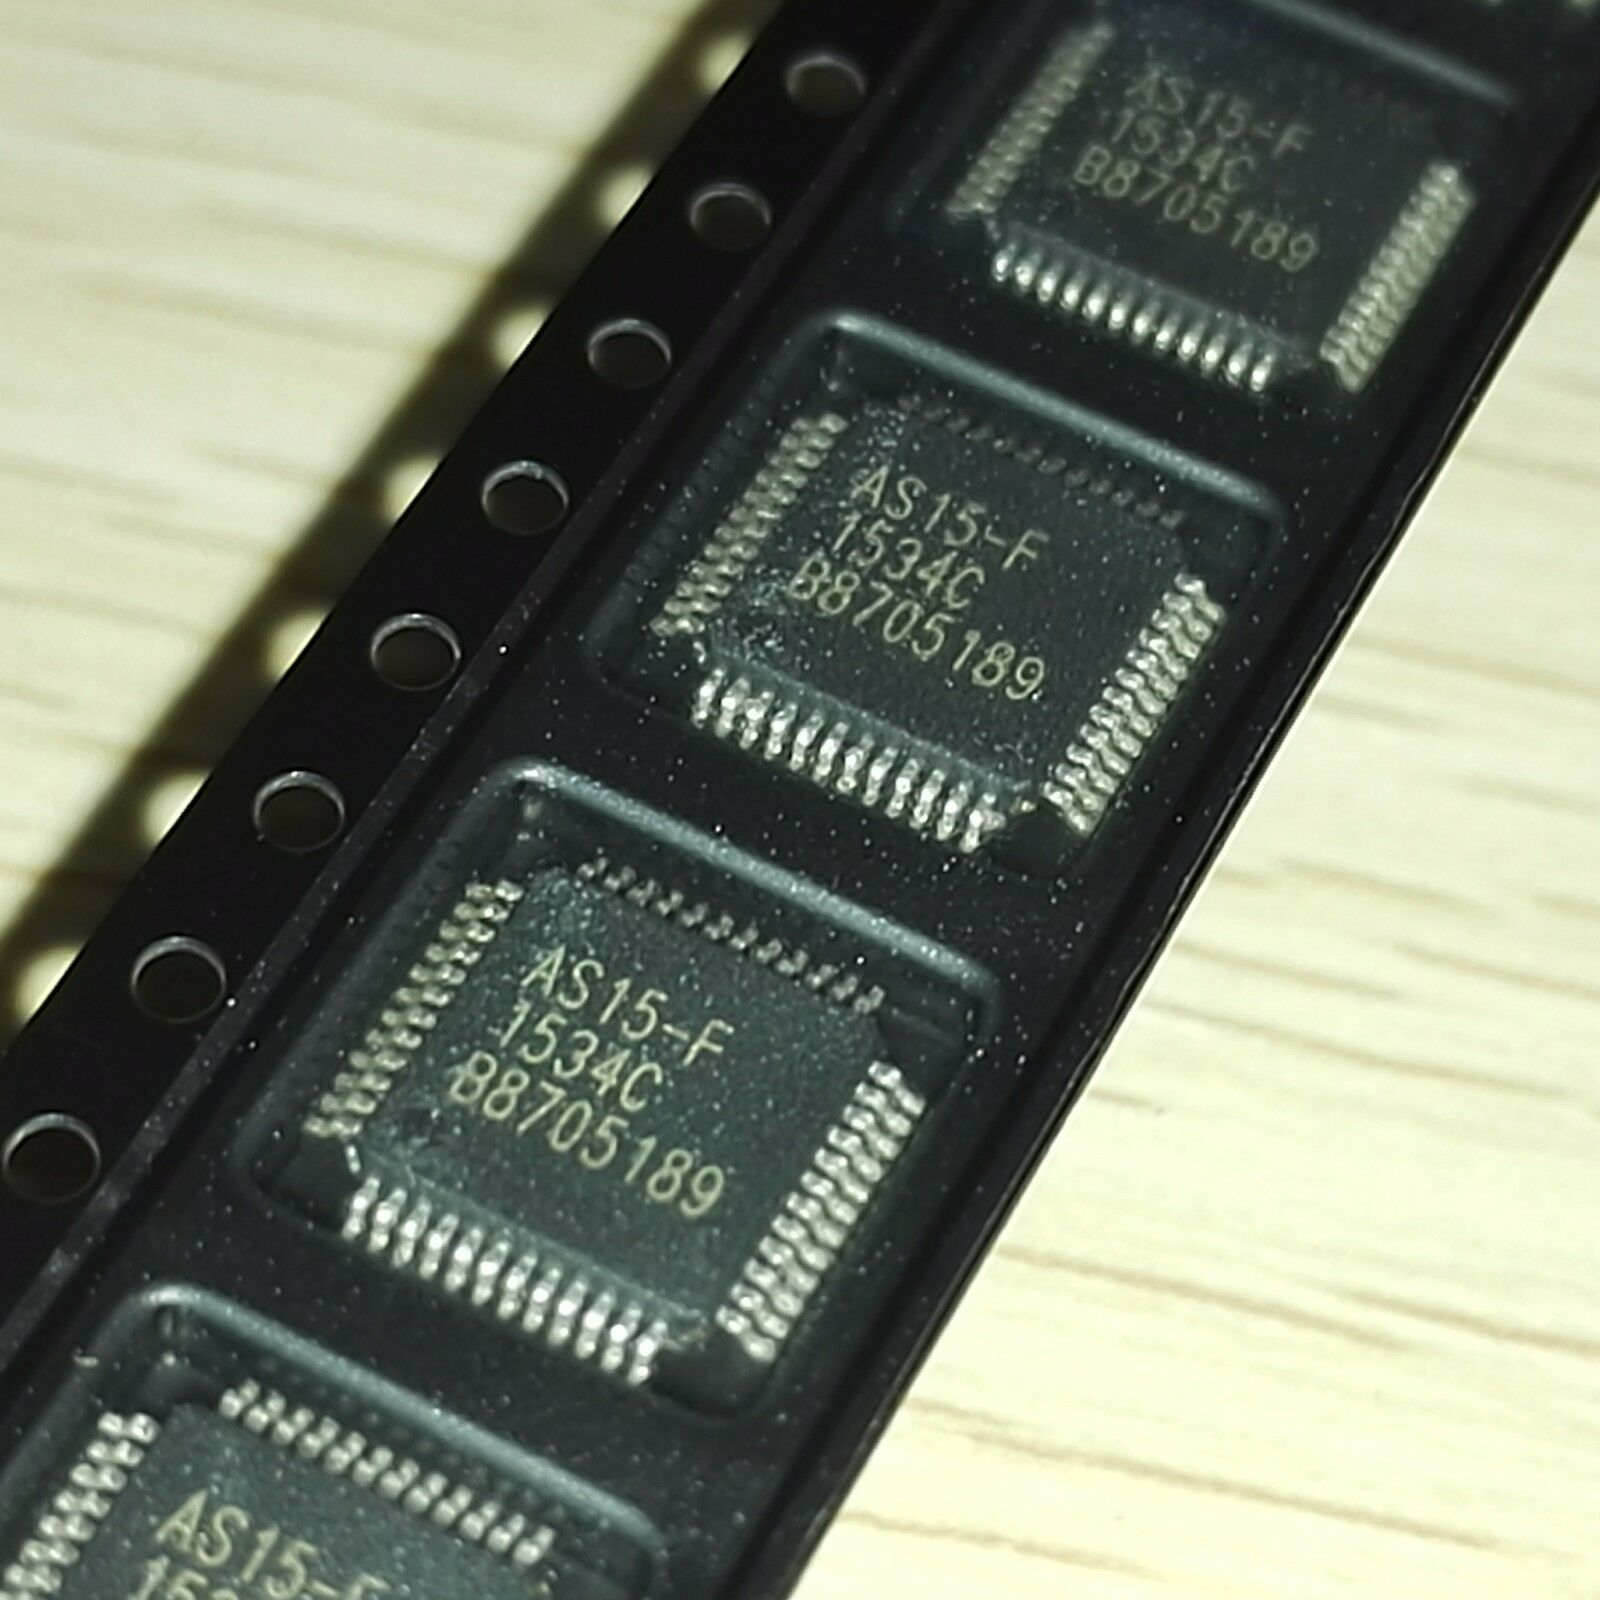 20pcs As15 F As15f Qfp 48 Original Integrated Circuit Ic Ebay Circuits Picture 1 Of